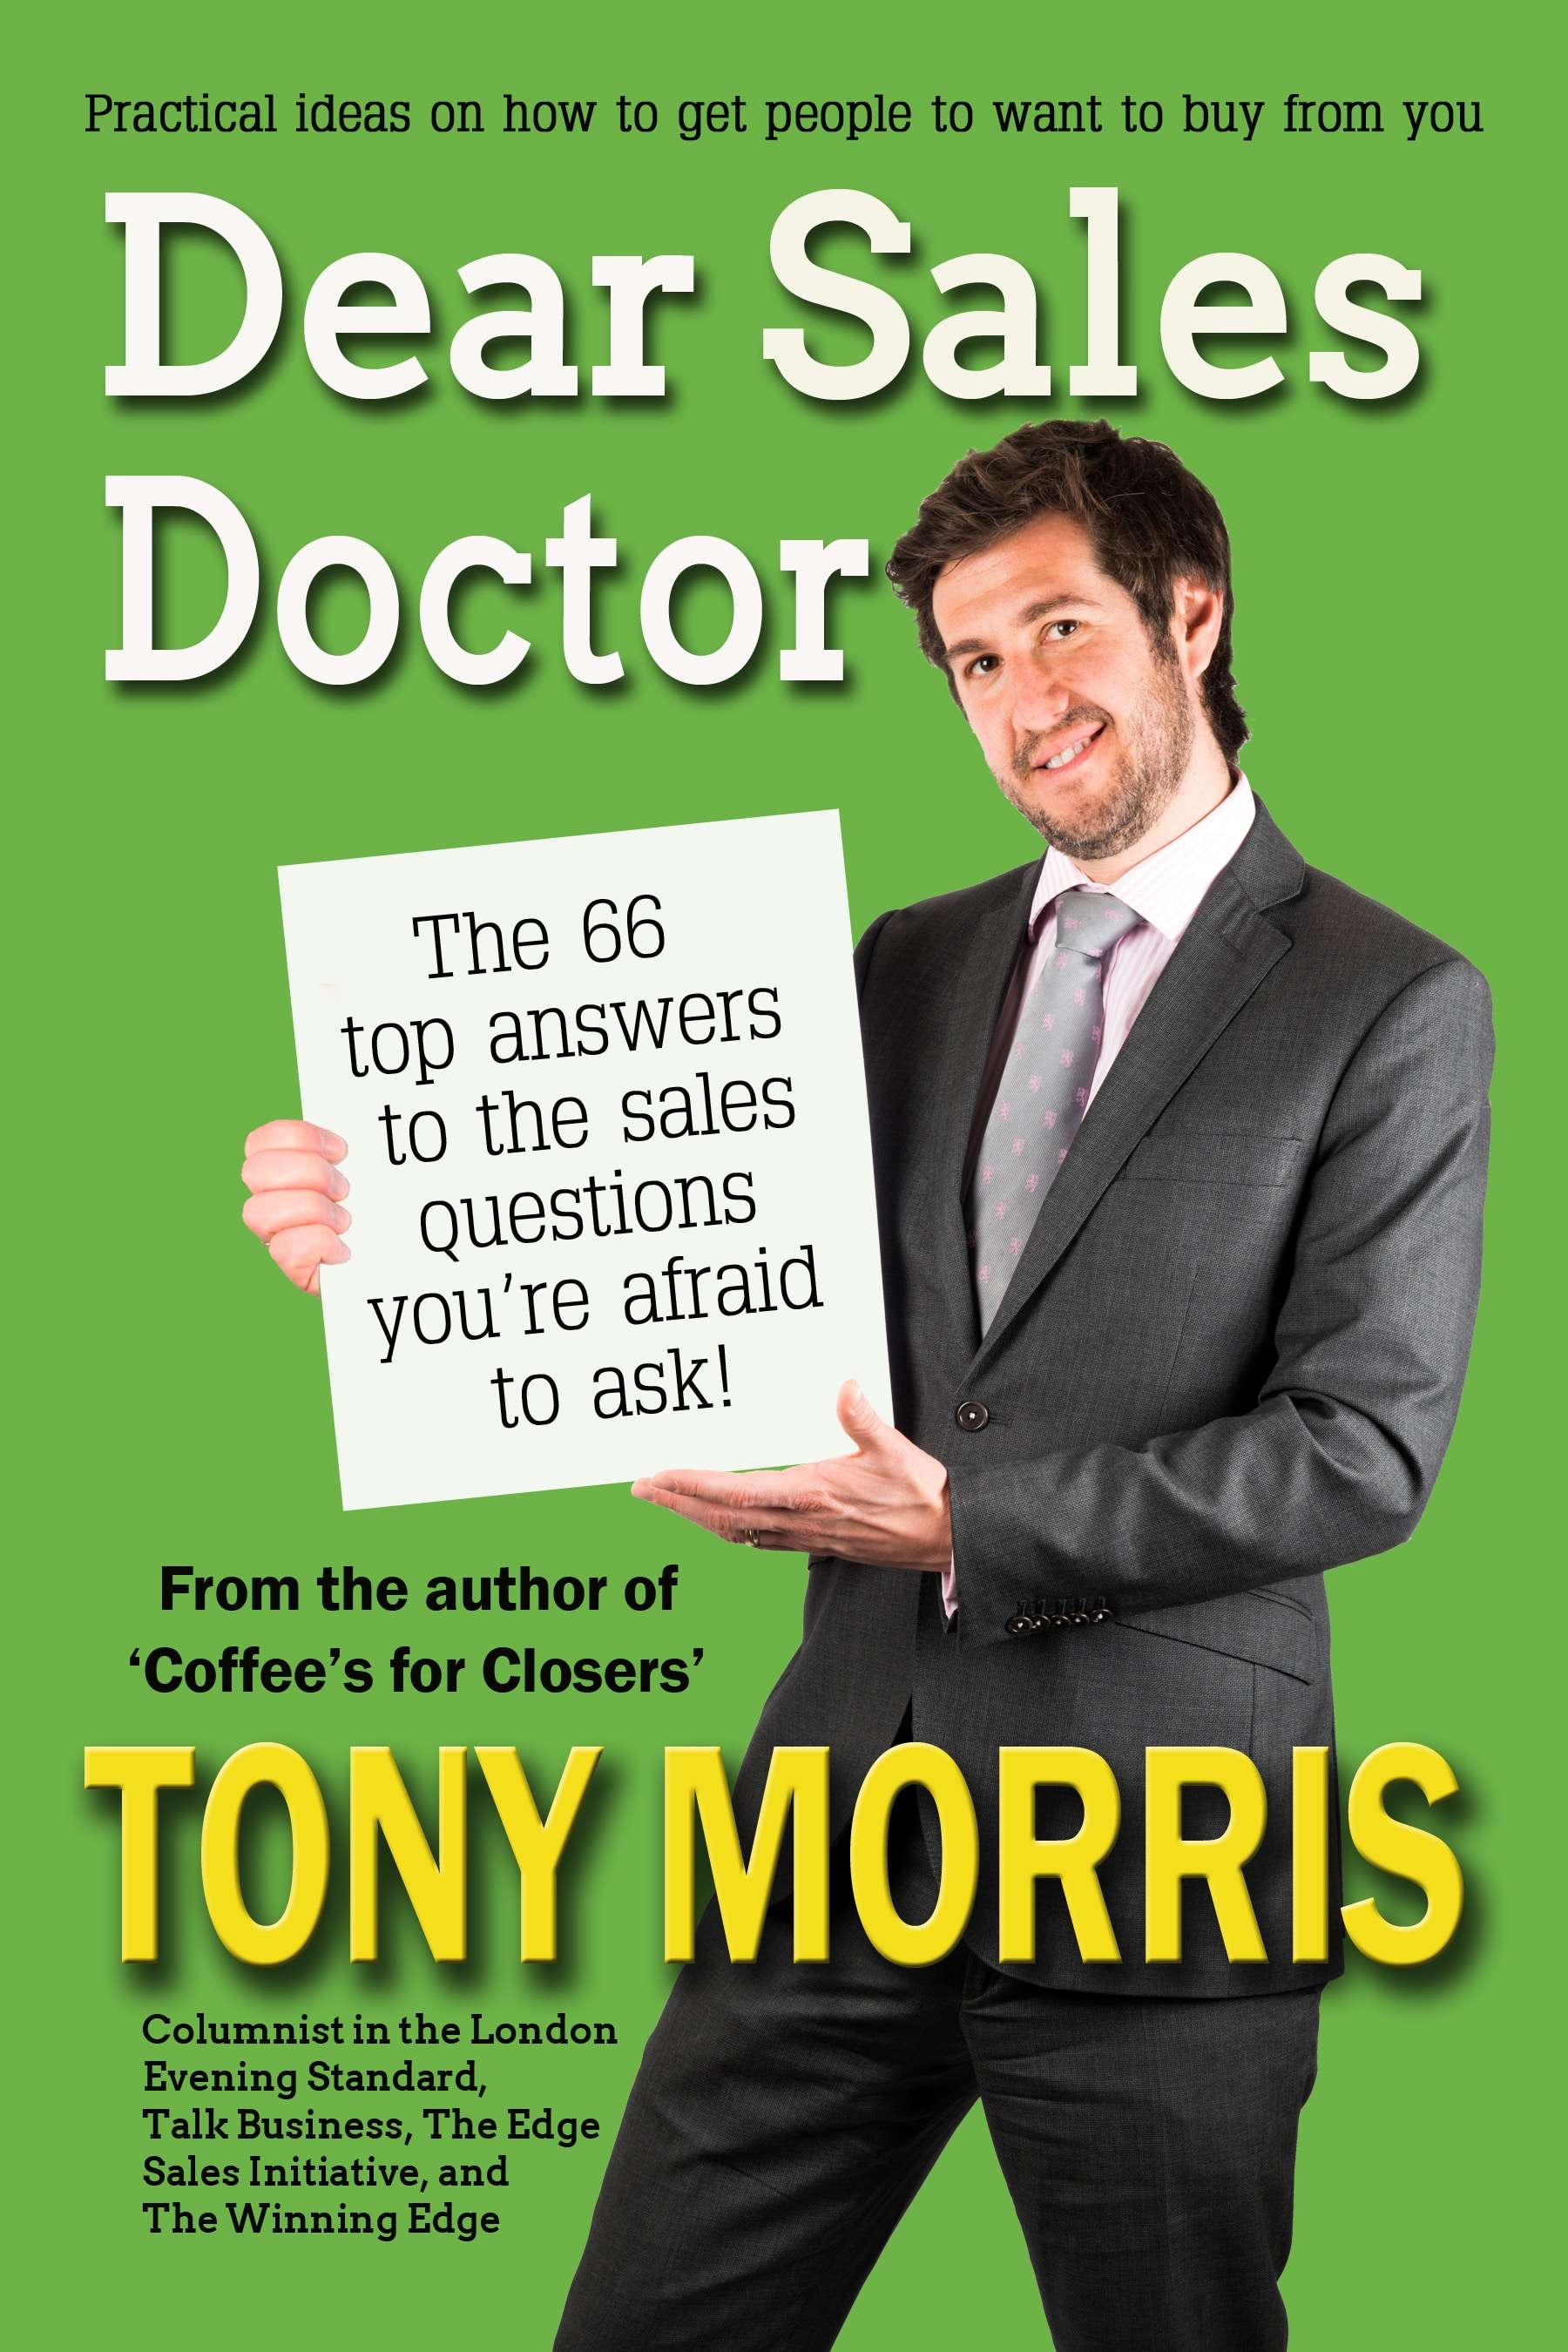 Dear Sales Doctor Book Cover